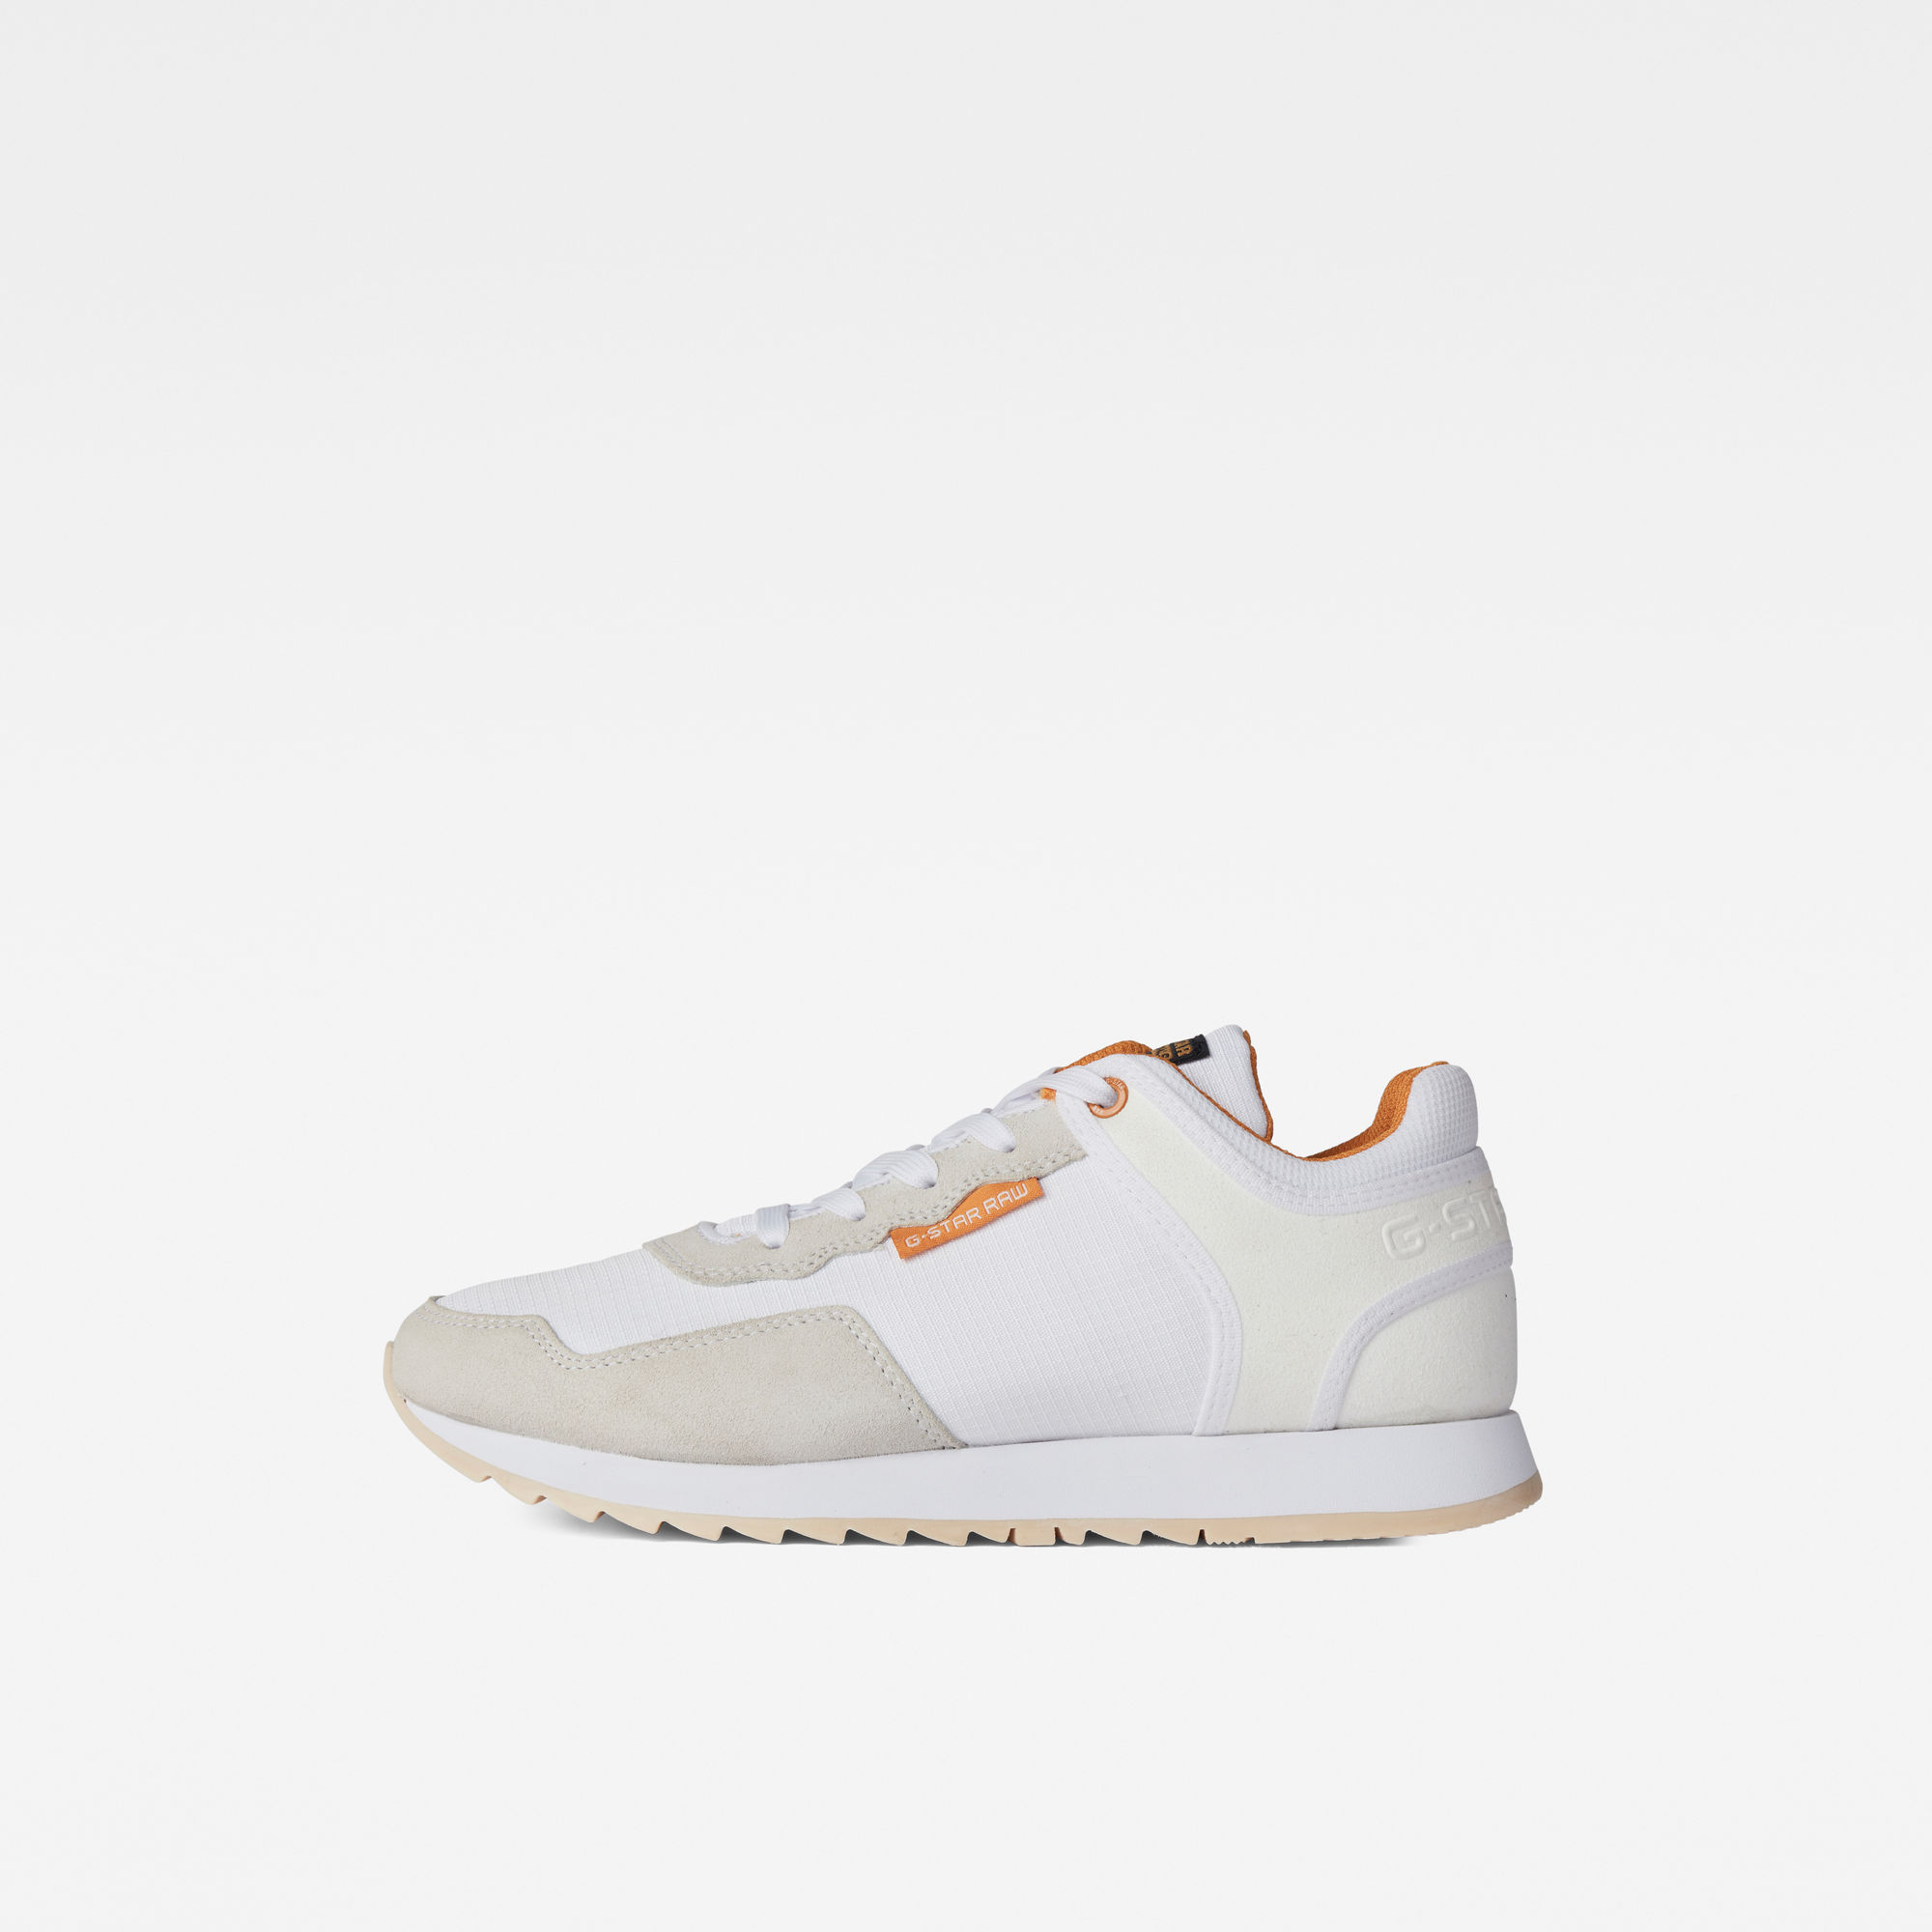 G-Star RAW Dames Calow Basic Q2 Sneakers Wit